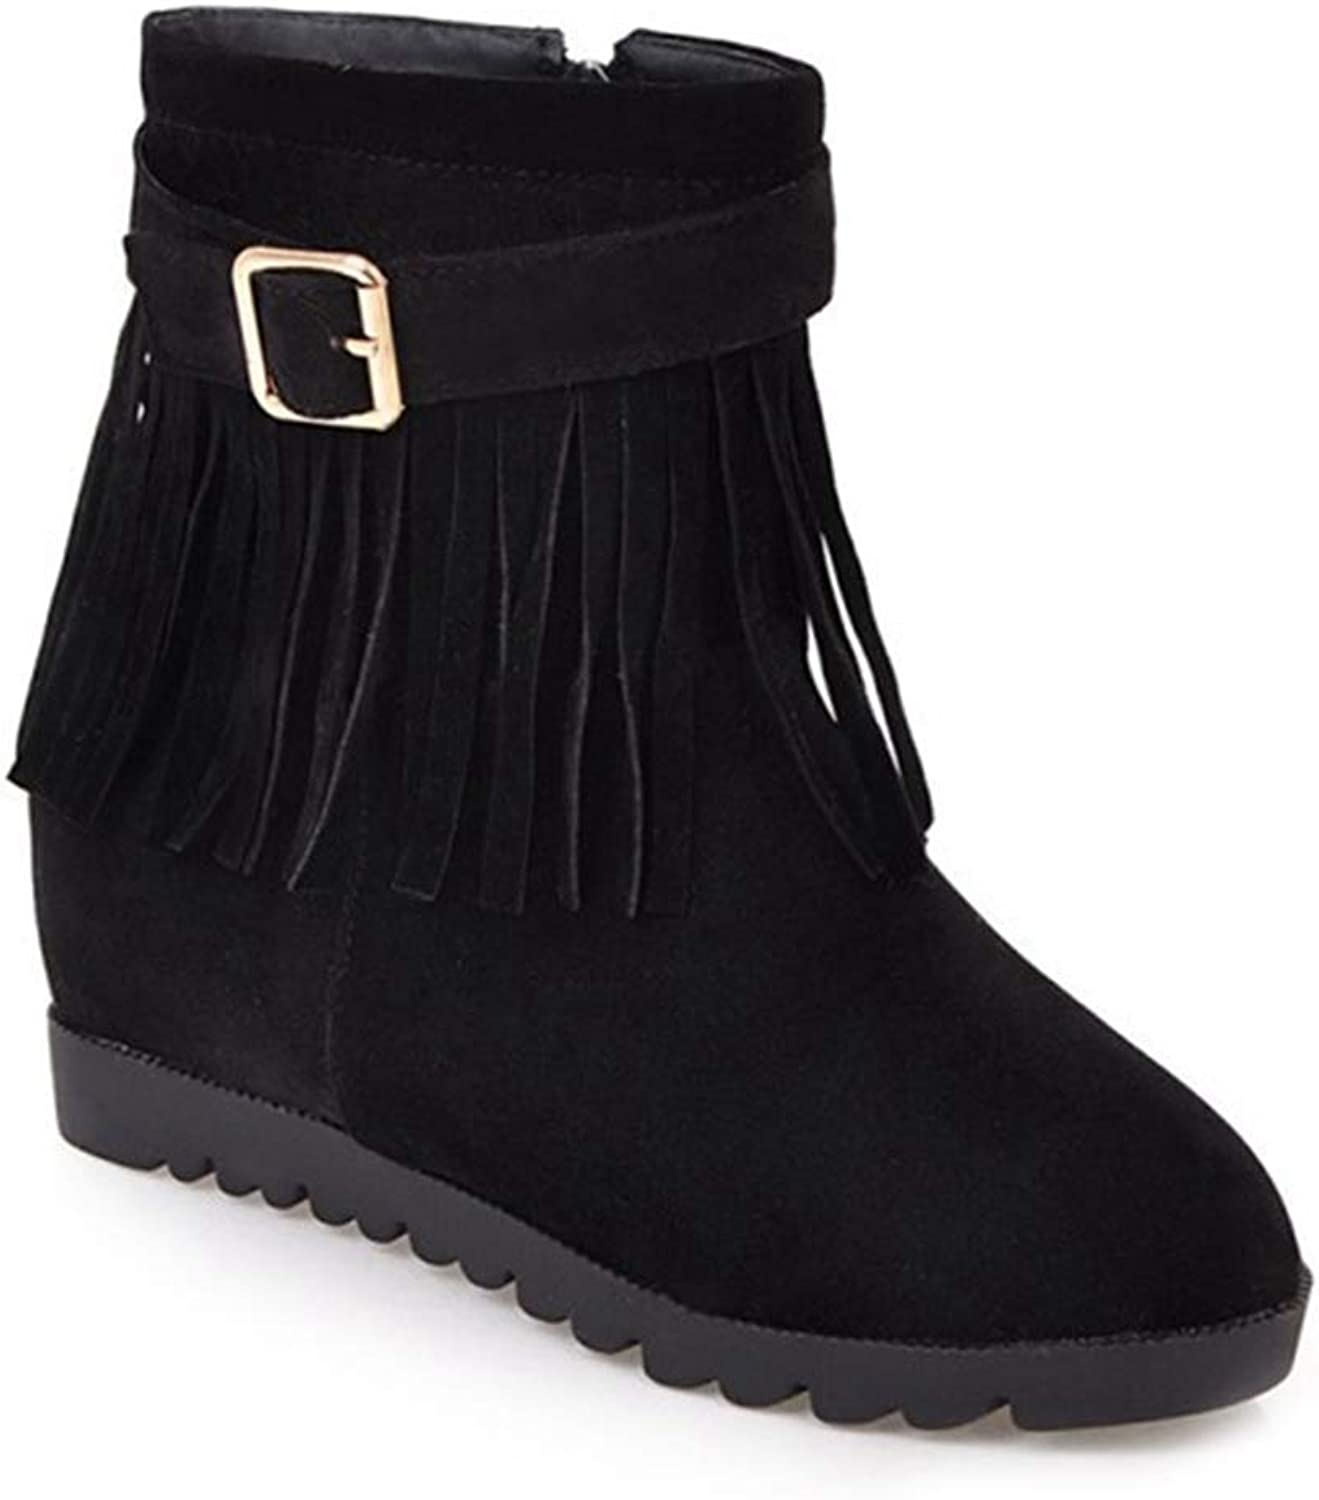 Fashion shoesbox Womens Fringe Buckle Mid Wedge Ankle Boots Suede Round Toe Zipper Hidden Heel Bootie Tassel Short Boot